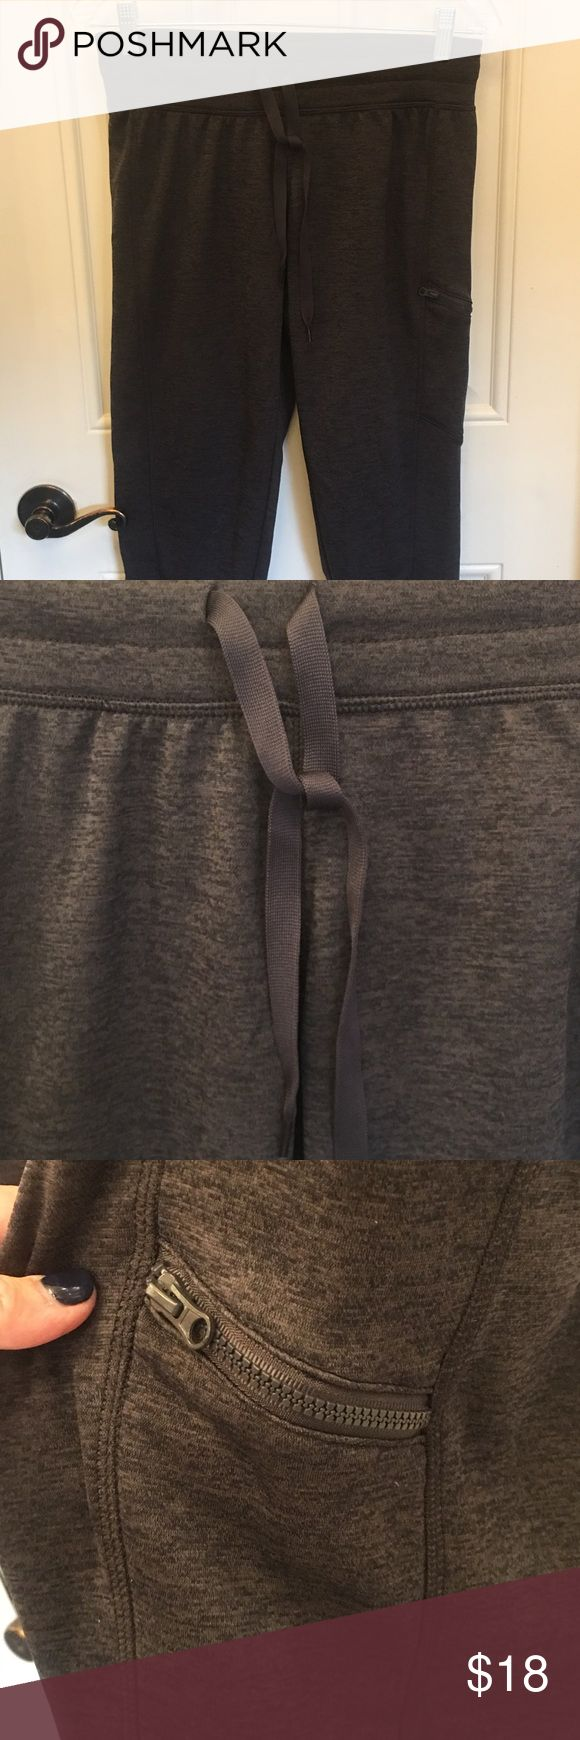 🎈Joggers/Lounge Wear🎈 🎈Champion Joggers/Lounge Wear. Dark Gray with drawstring waist. Tapered ankles. These are Capri type work-out pants. Has a zipper pocket to hold money, keys, cell. Has NEVER BEEN WORN. 🎈                                            🧡NWOT🧡 Champion Other